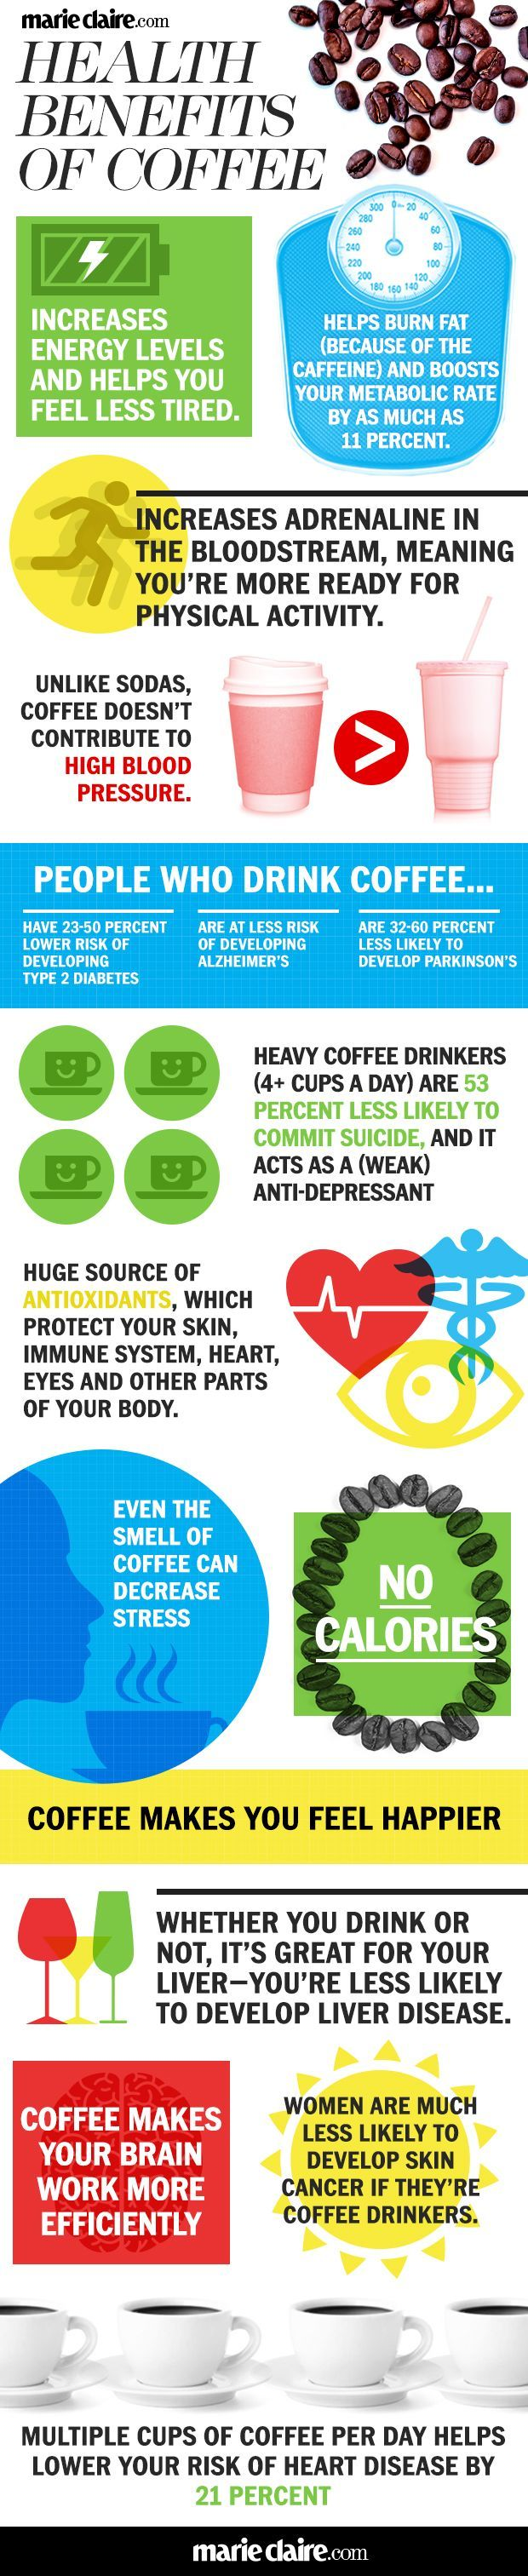 Health Benefits of Coffee - Why Coffee Is Good For You - Marie Claire